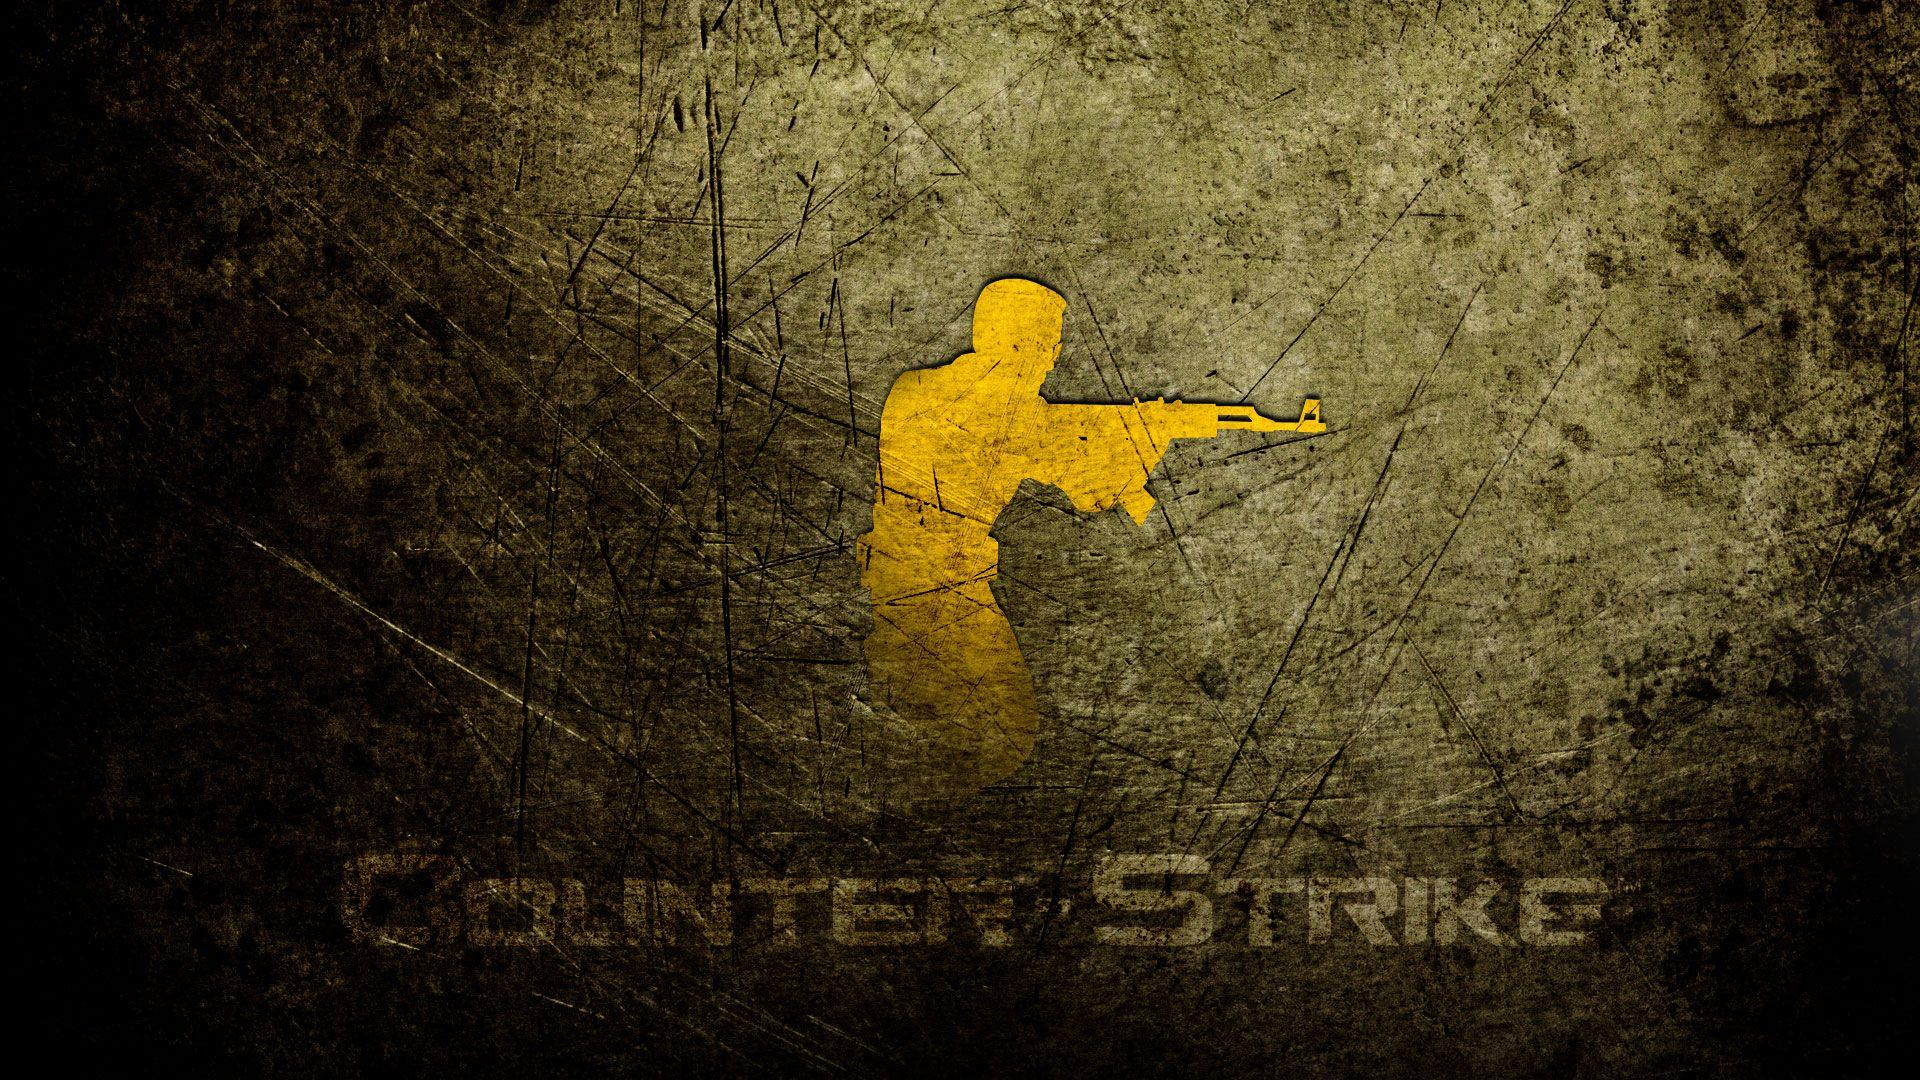 Counter Strike Wallpaper 31937 1920x1080 px ~ HDWallSource.com